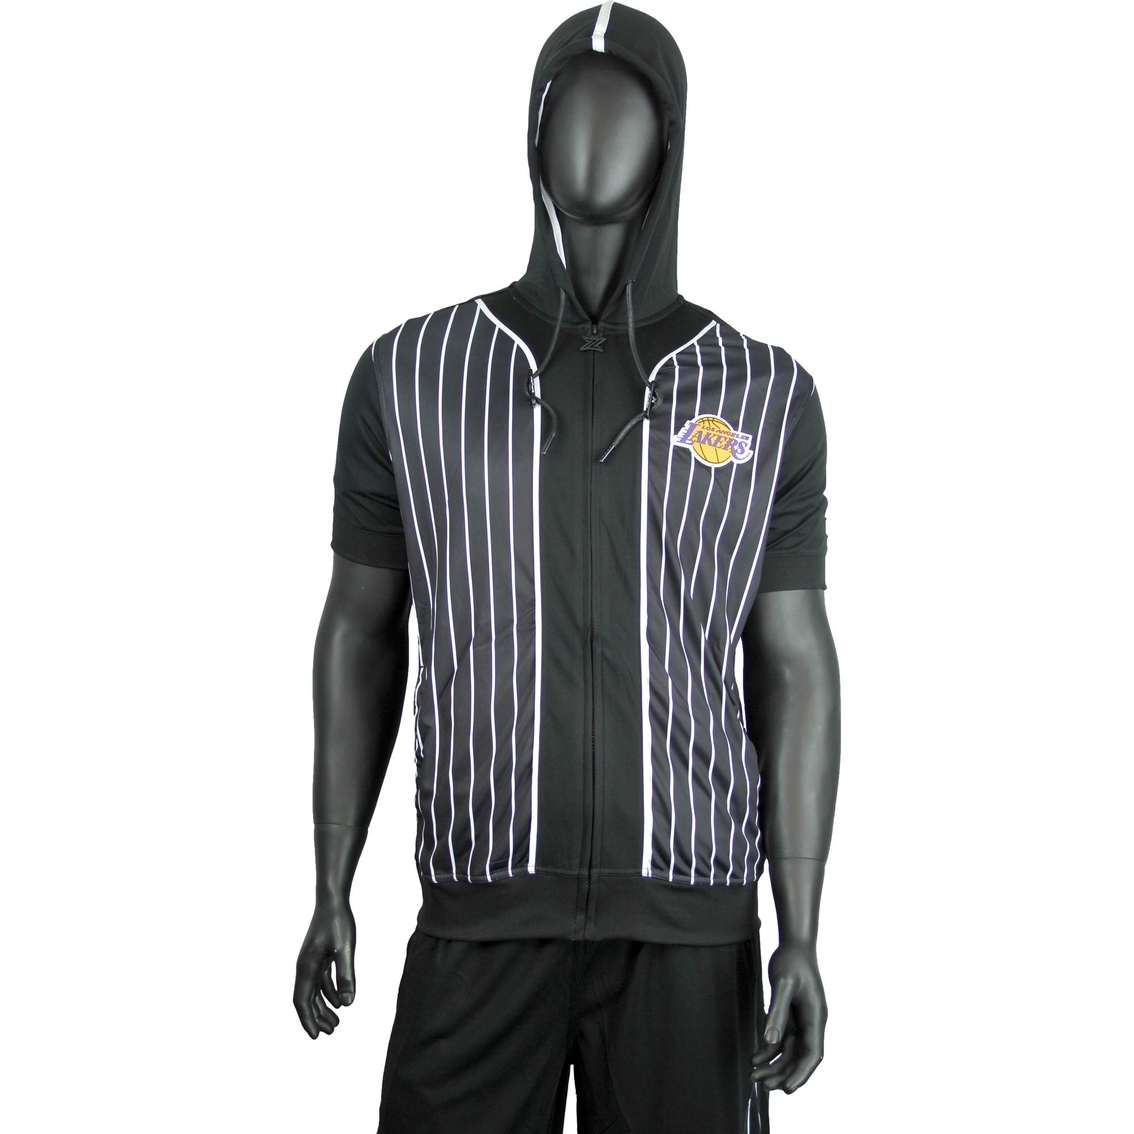 918028b4d Zipway Nba Los Angeles Lakers Pinstripe Jersey